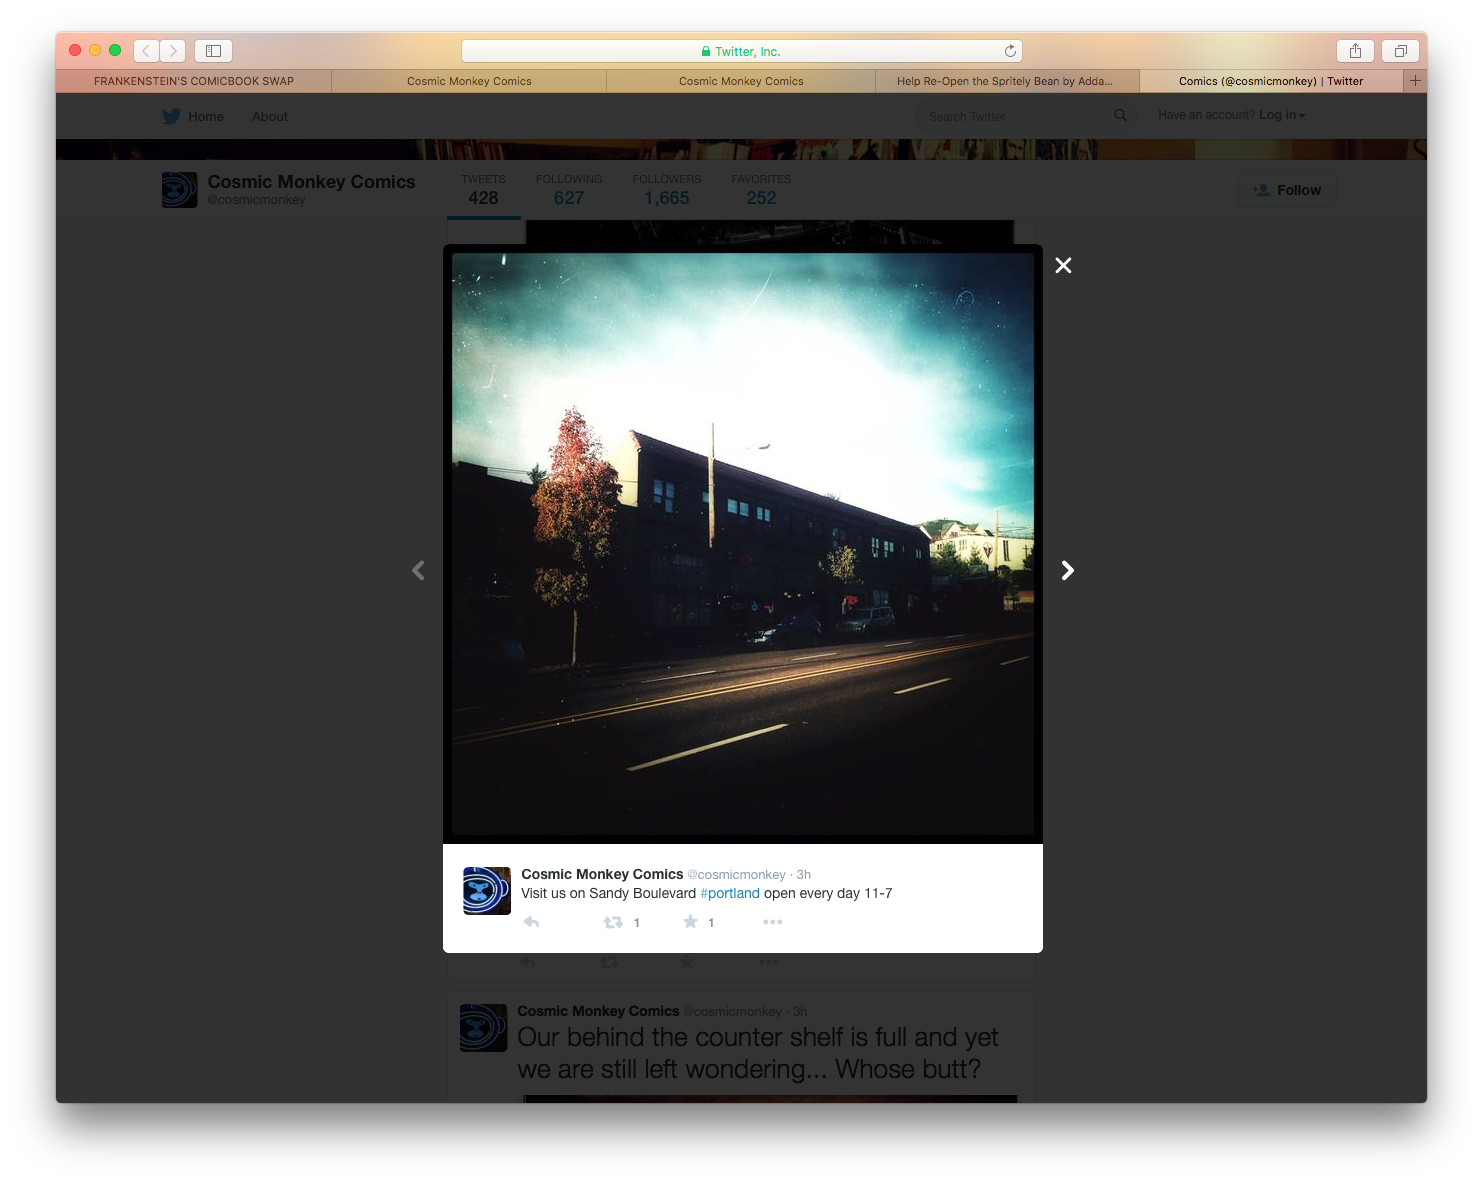 Screenshot 2015-10-16 15.12.58.png